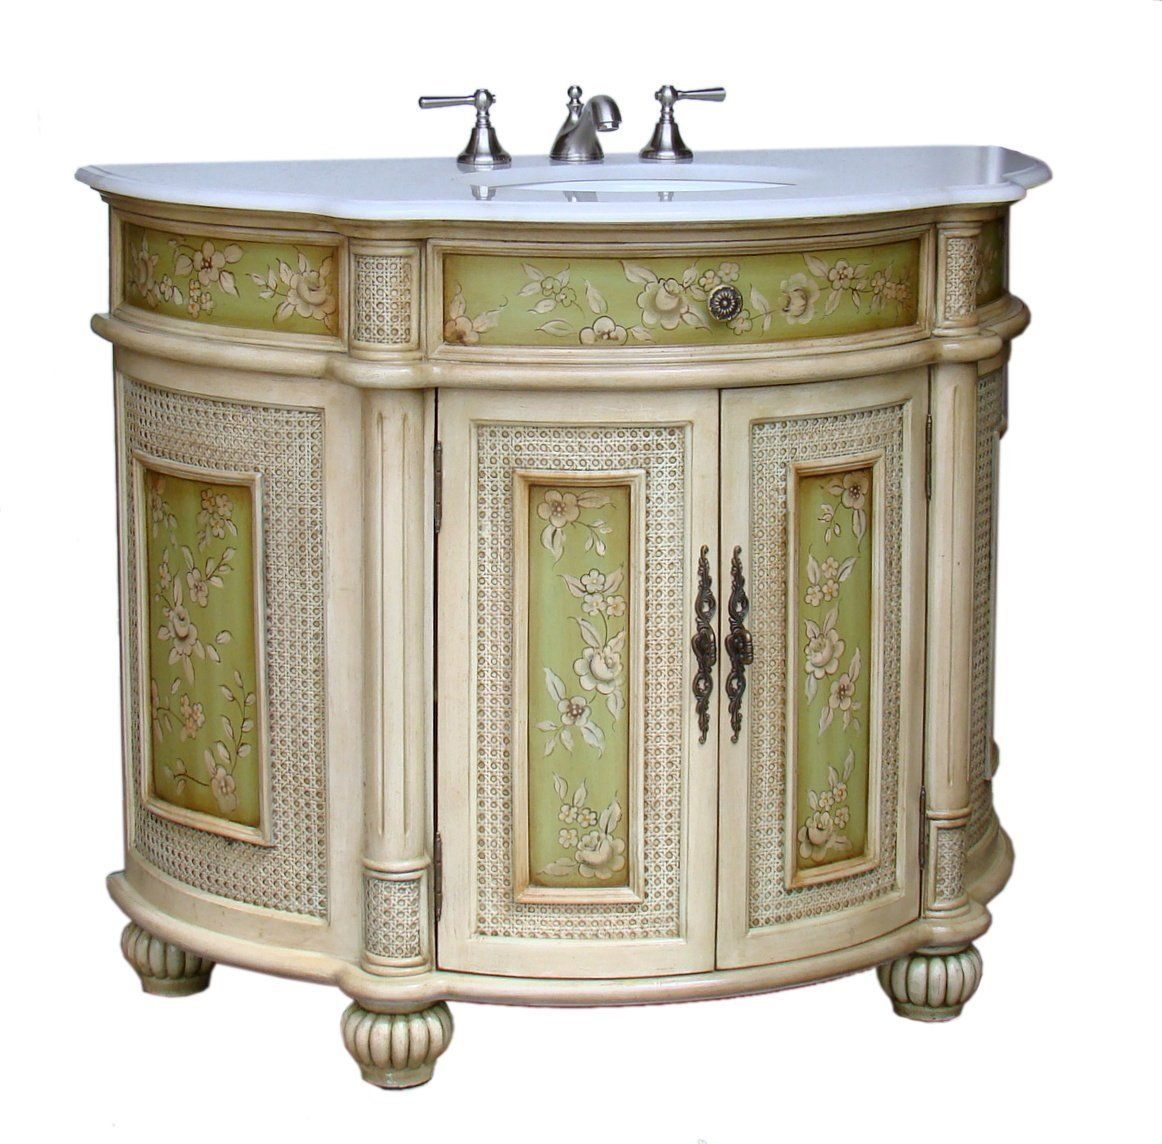 Painted Bathroom Vanity Adelina 48 Inch Antique Hand Painted Bathroom Vanity